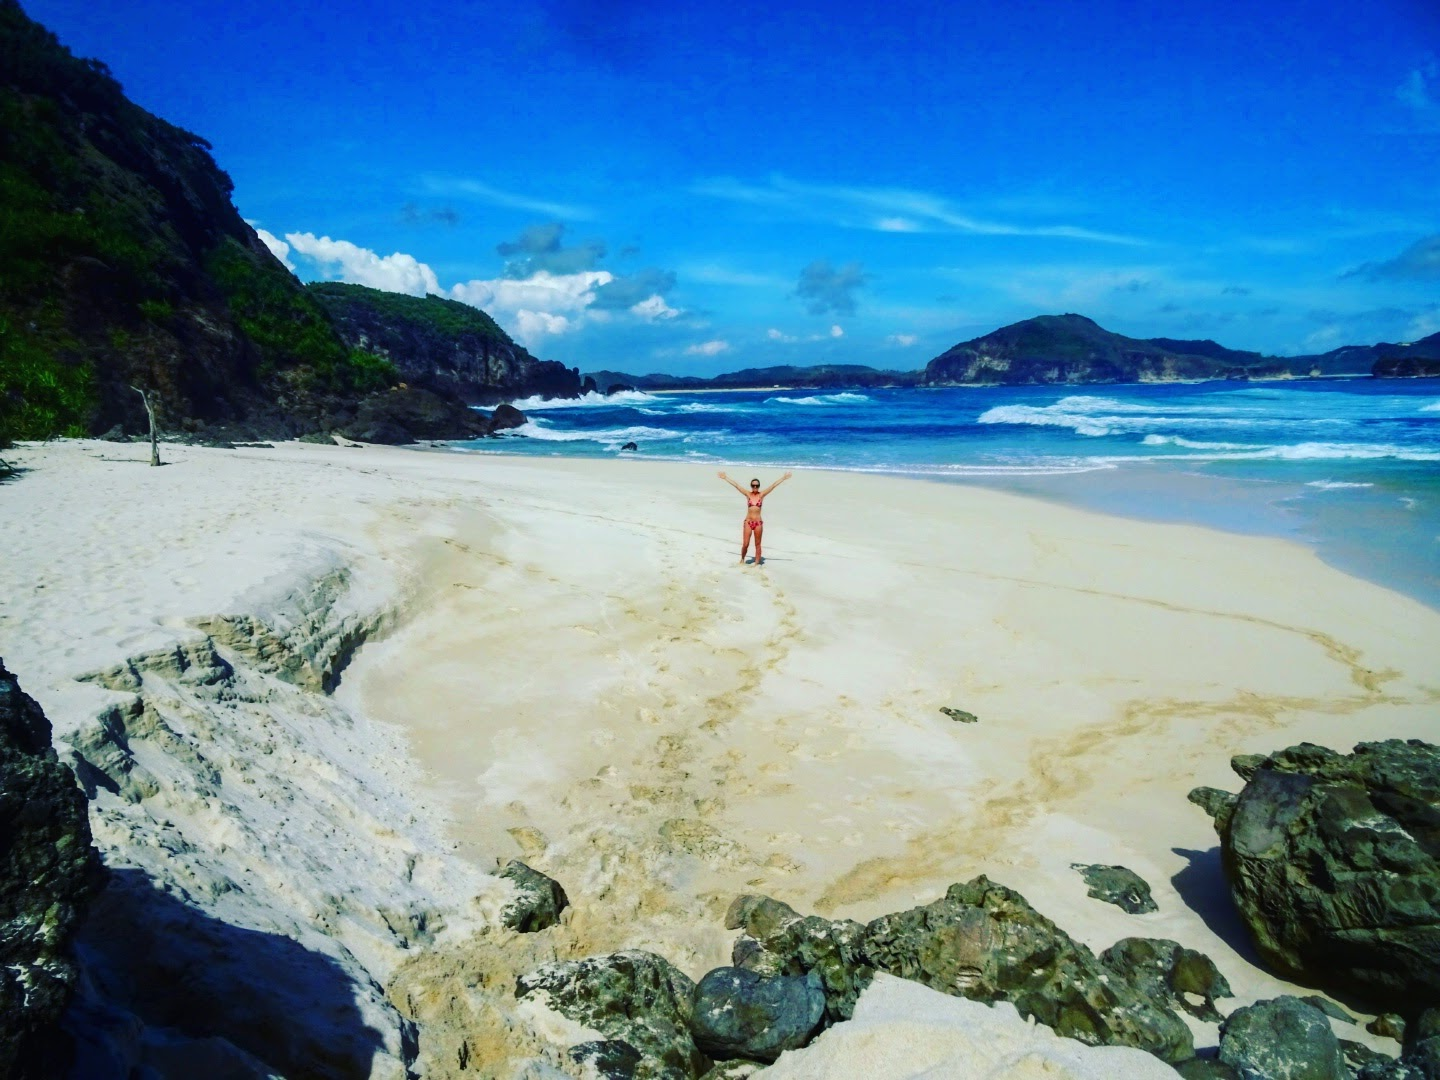 Nicola standing in the middle of an empty beach by the sea in southern Lombok, Indonesia.